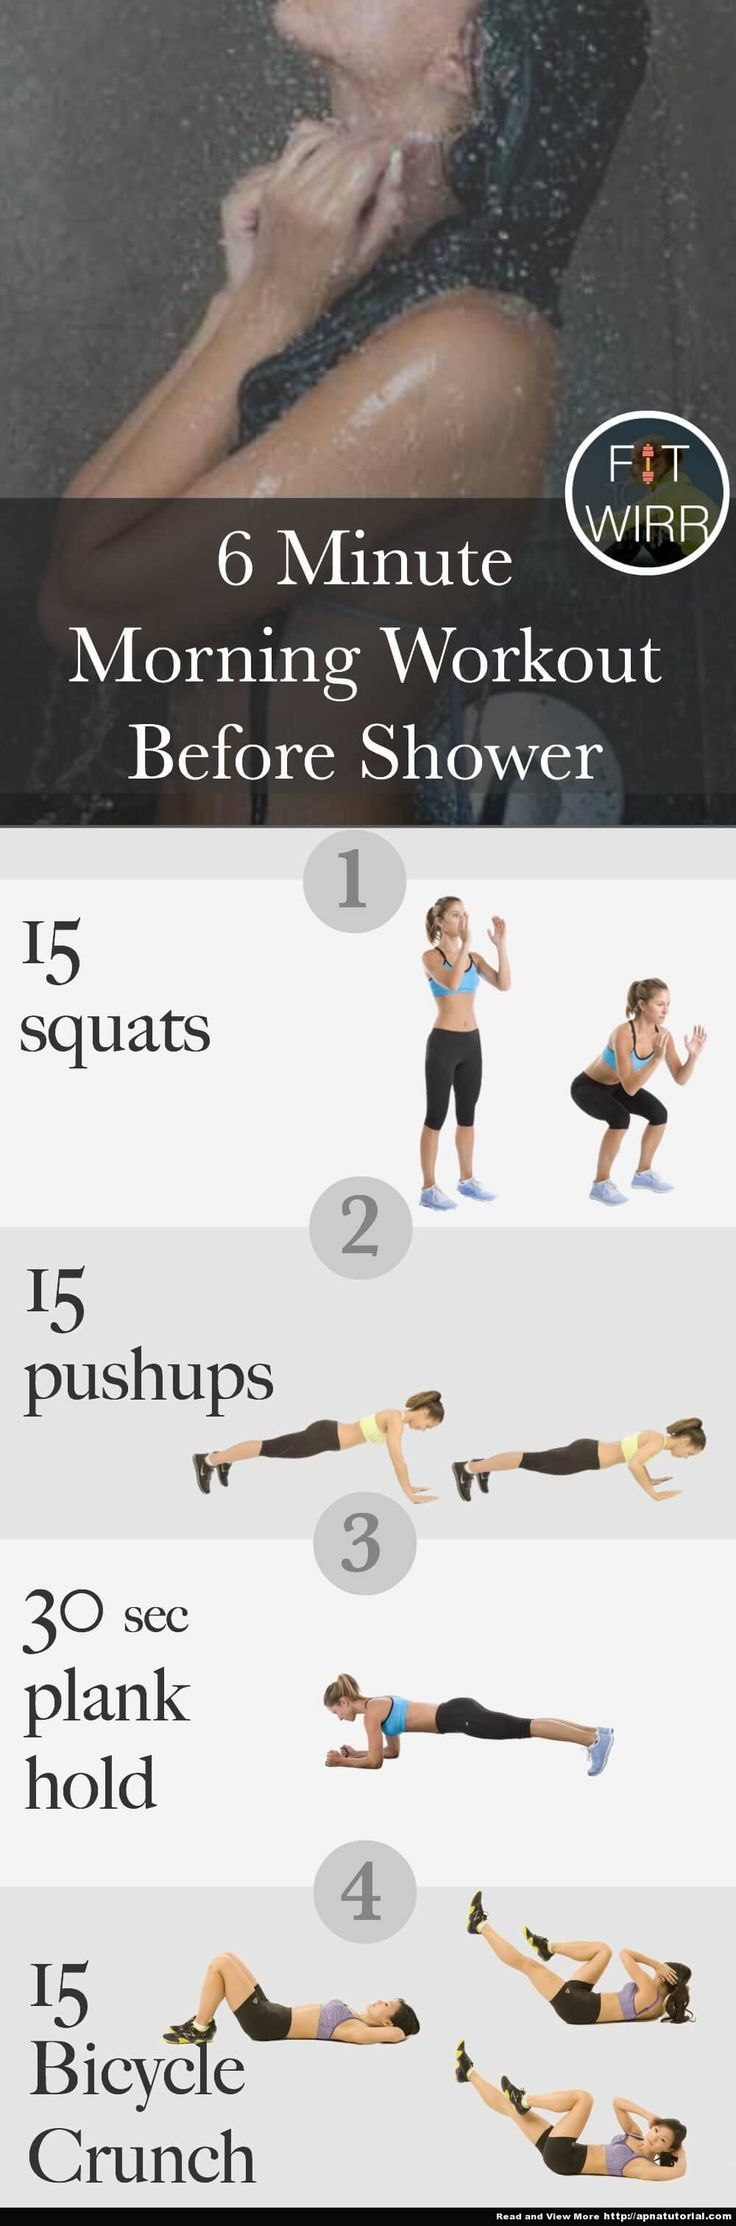 Mini Morning Workout to Crush Calories and Melt Fat